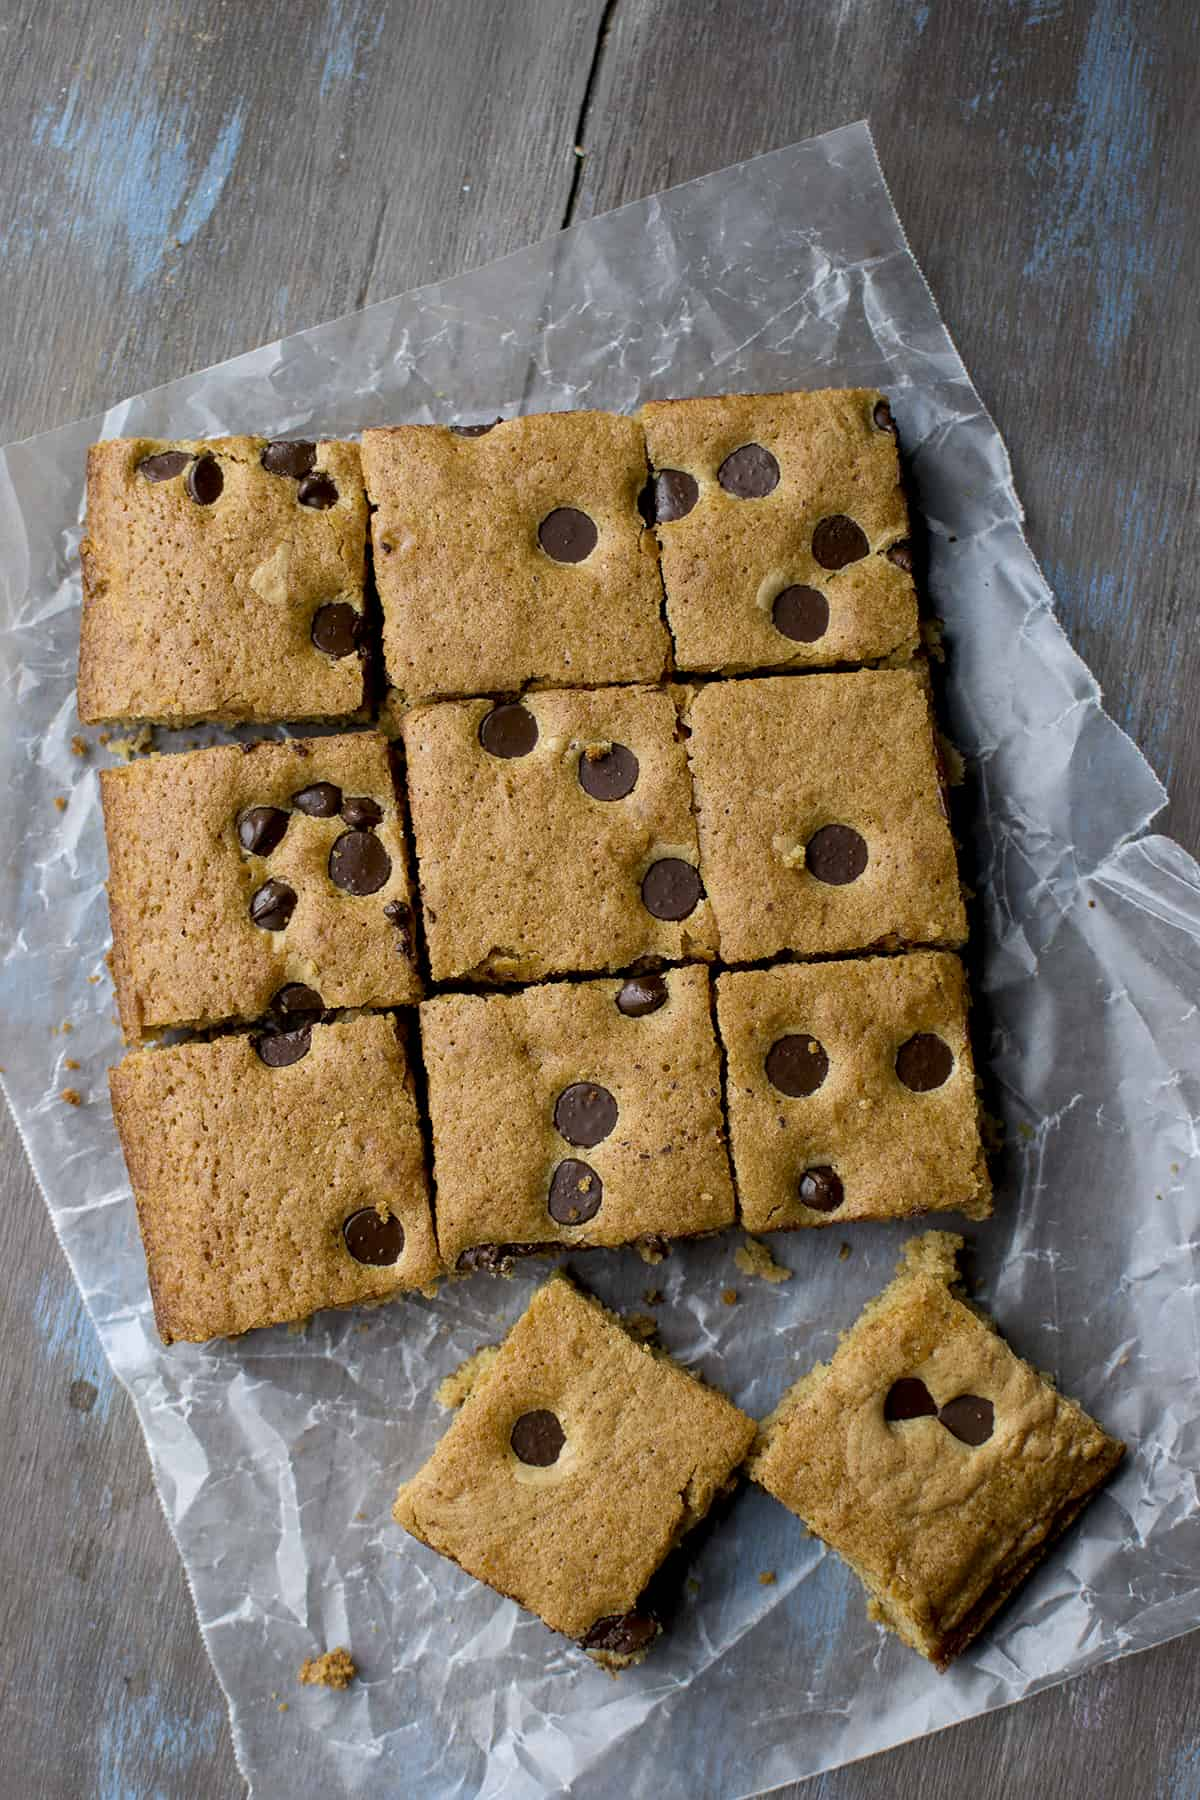 Parchment paper with chocolate chip topped blondies